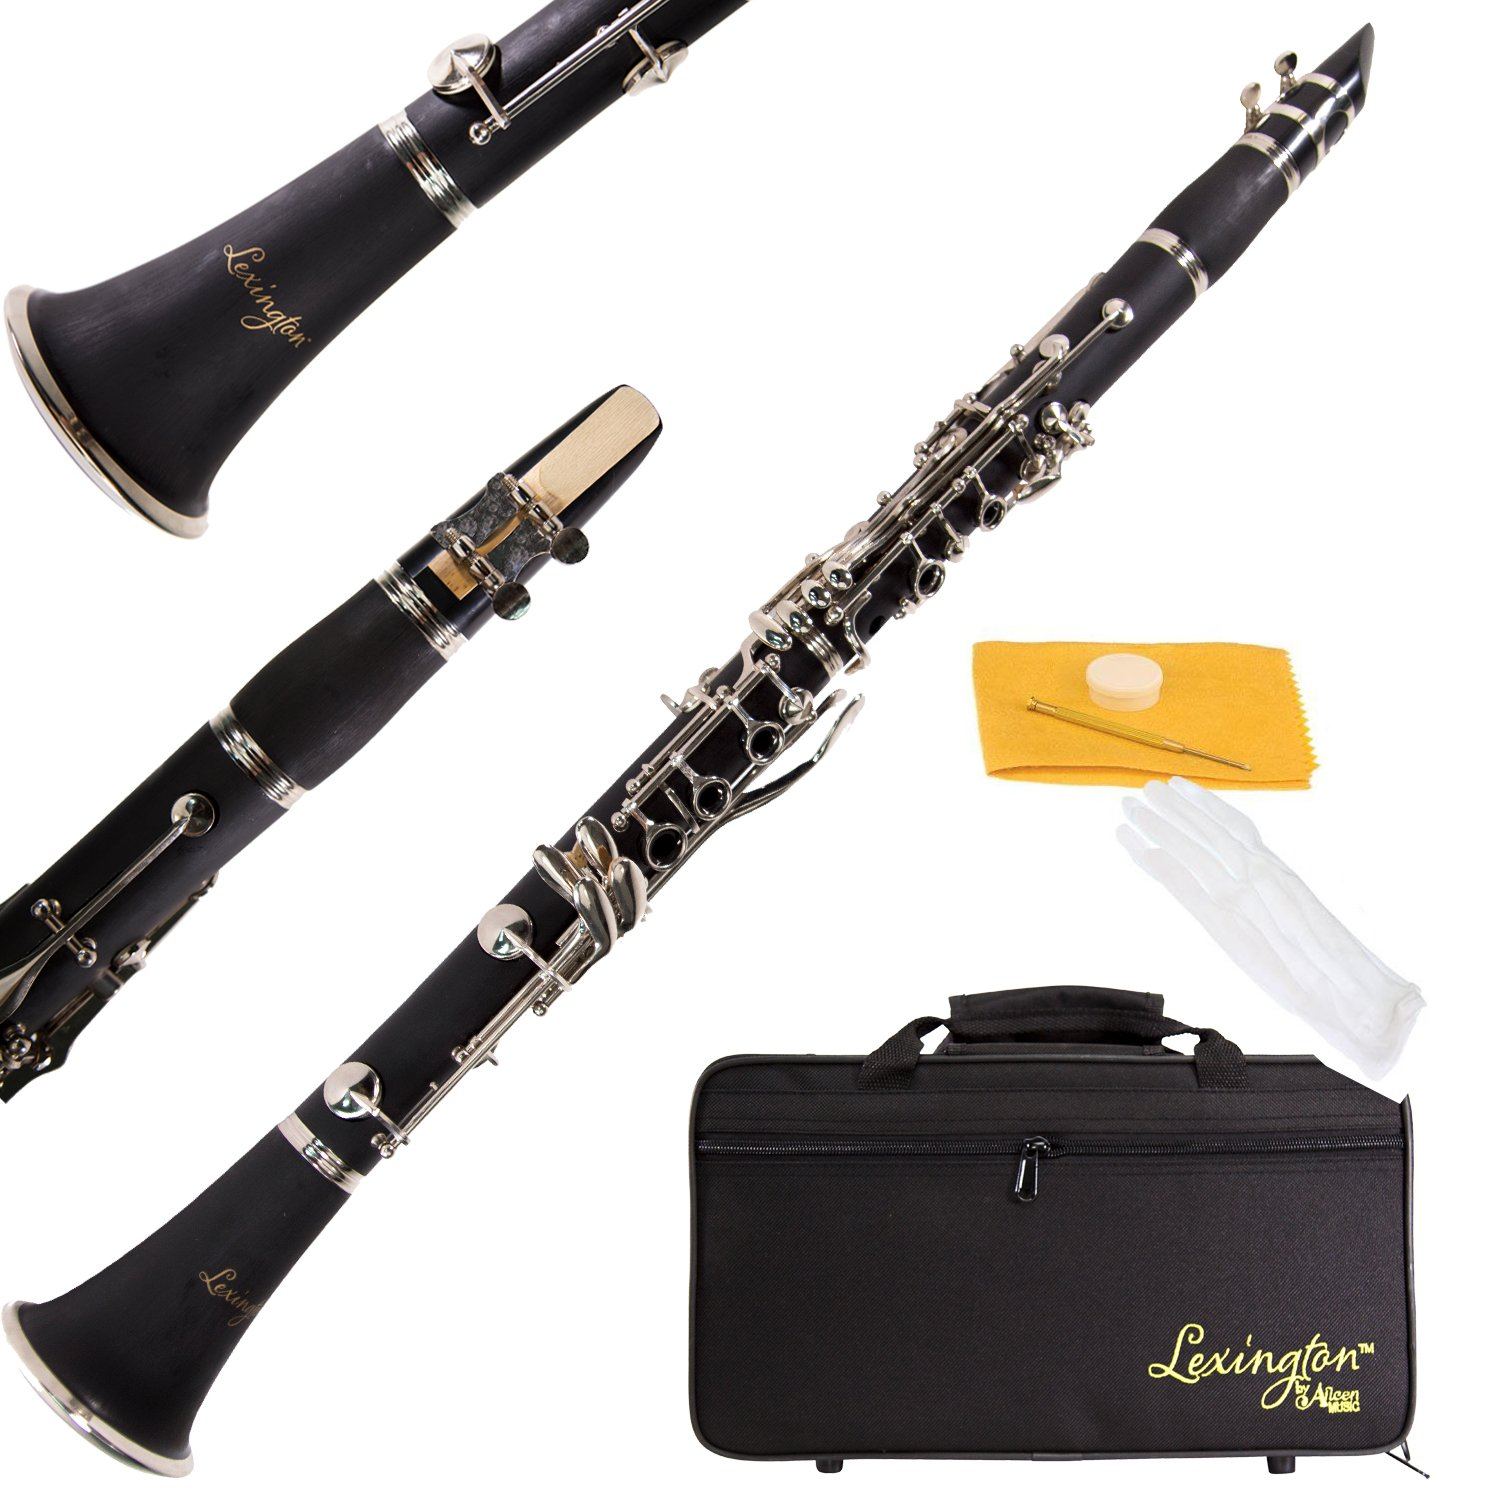 Aileen Lexington Bb Flat 17 Key Clarinet with Mouthpiece, Hard Case, Cork Grease, Gloves and Other Kit by Aileen